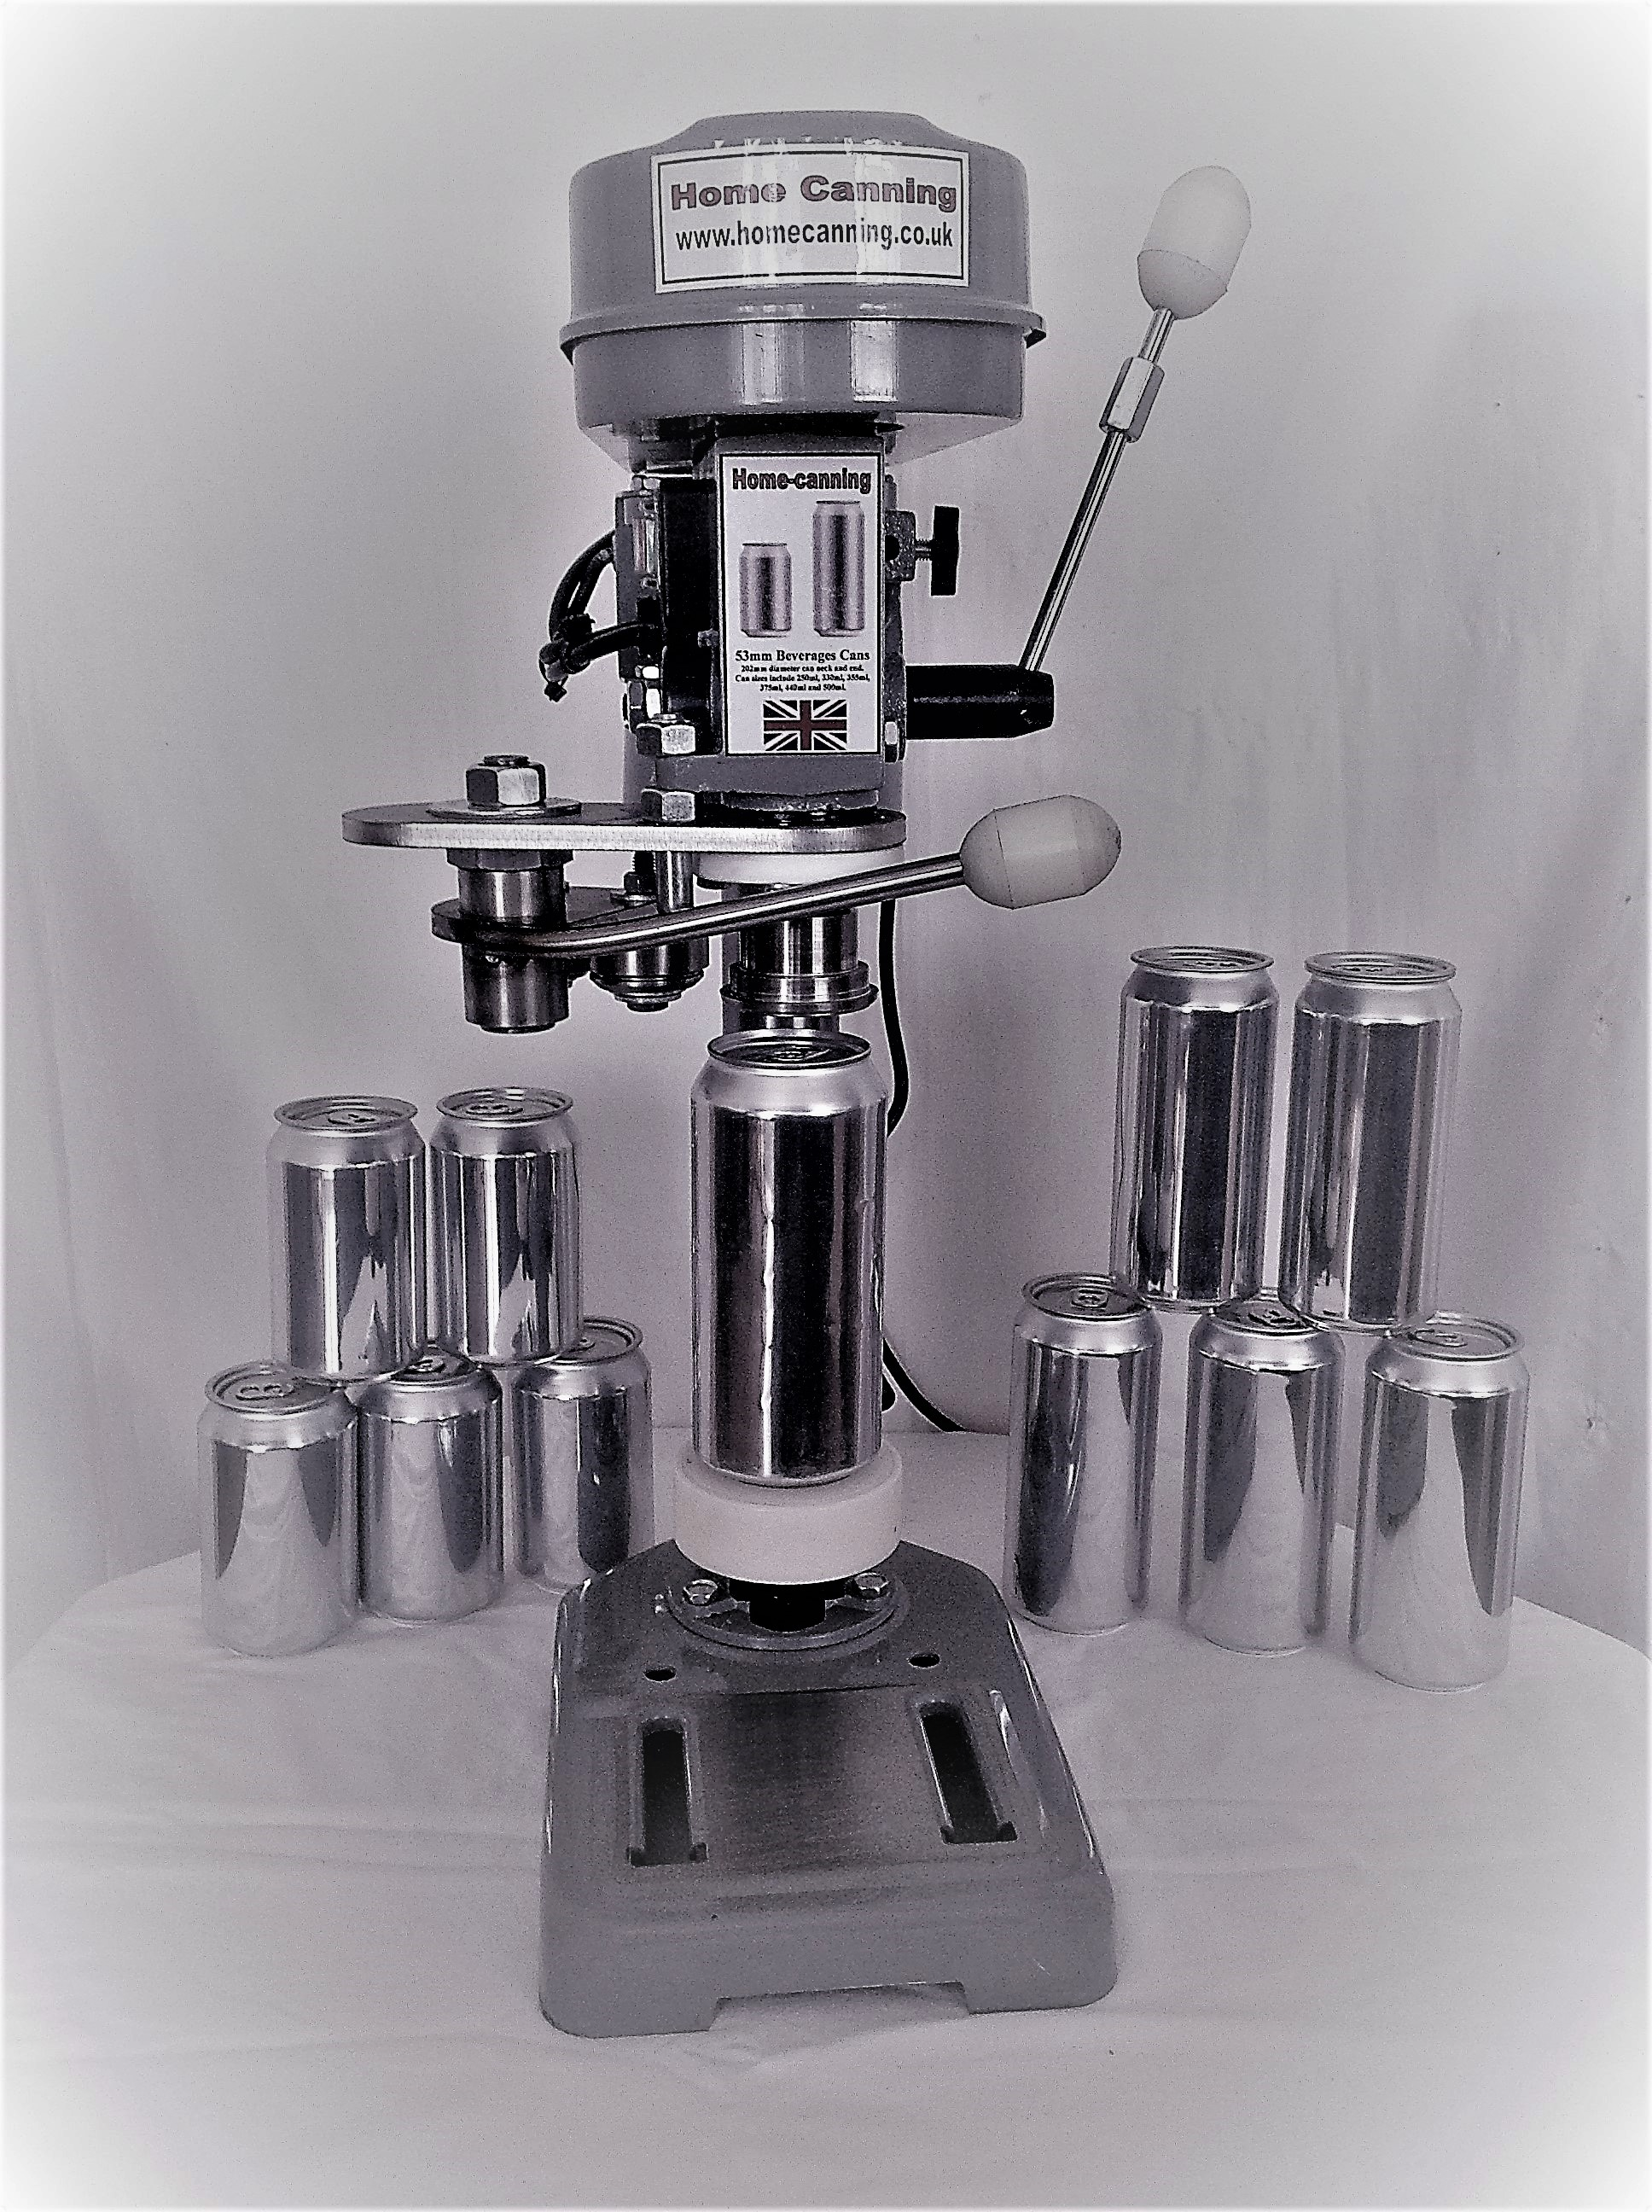 New Work-Top Electric Home Canning Machine. 53mm Diameter Beverage Can Sealer + 500 cans